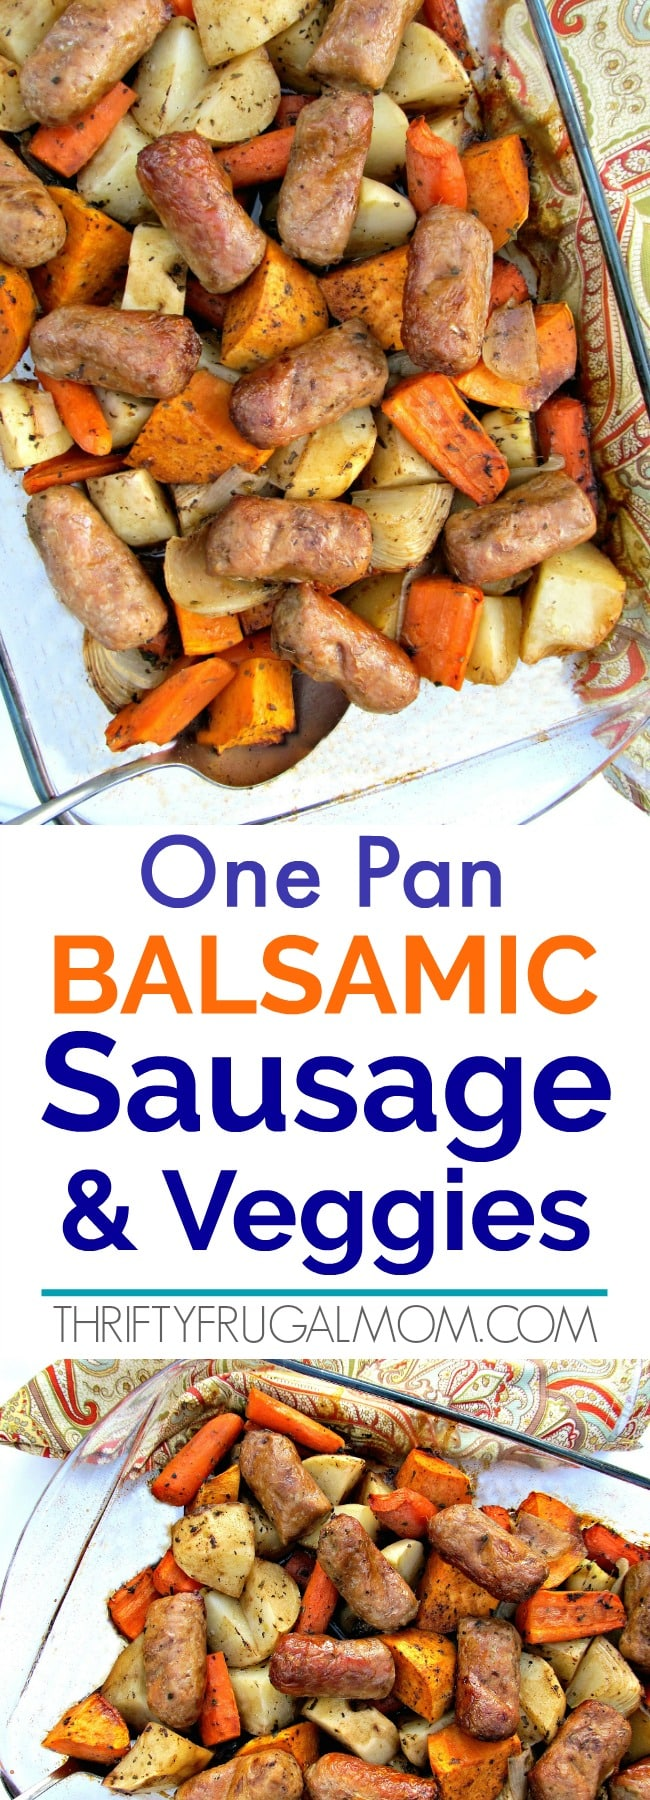 One Pan Balsamic Sausage and Veggies